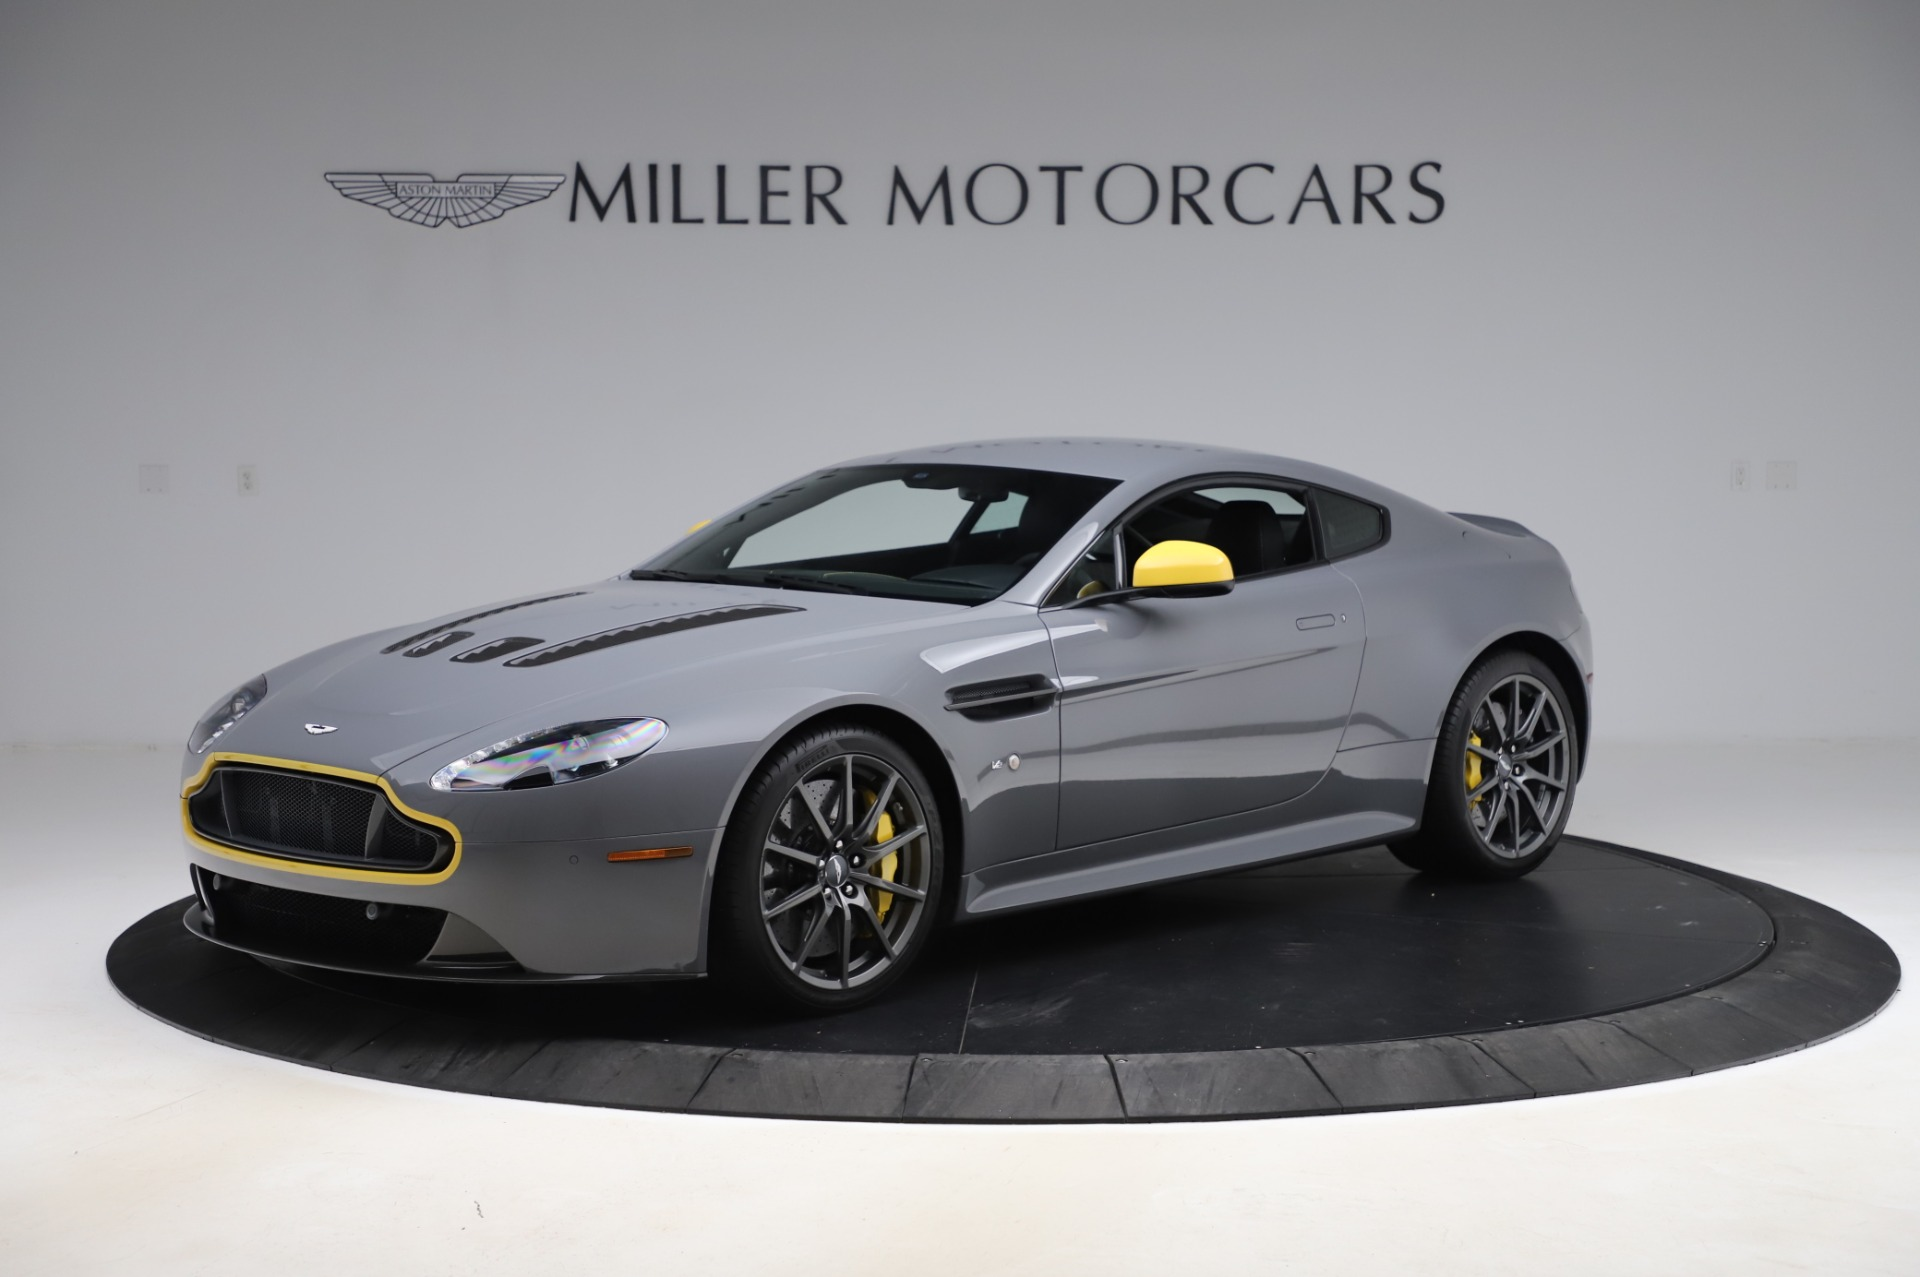 Used 2017 Aston Martin V12 Vantage S for sale $185,900 at Pagani of Greenwich in Greenwich CT 06830 1